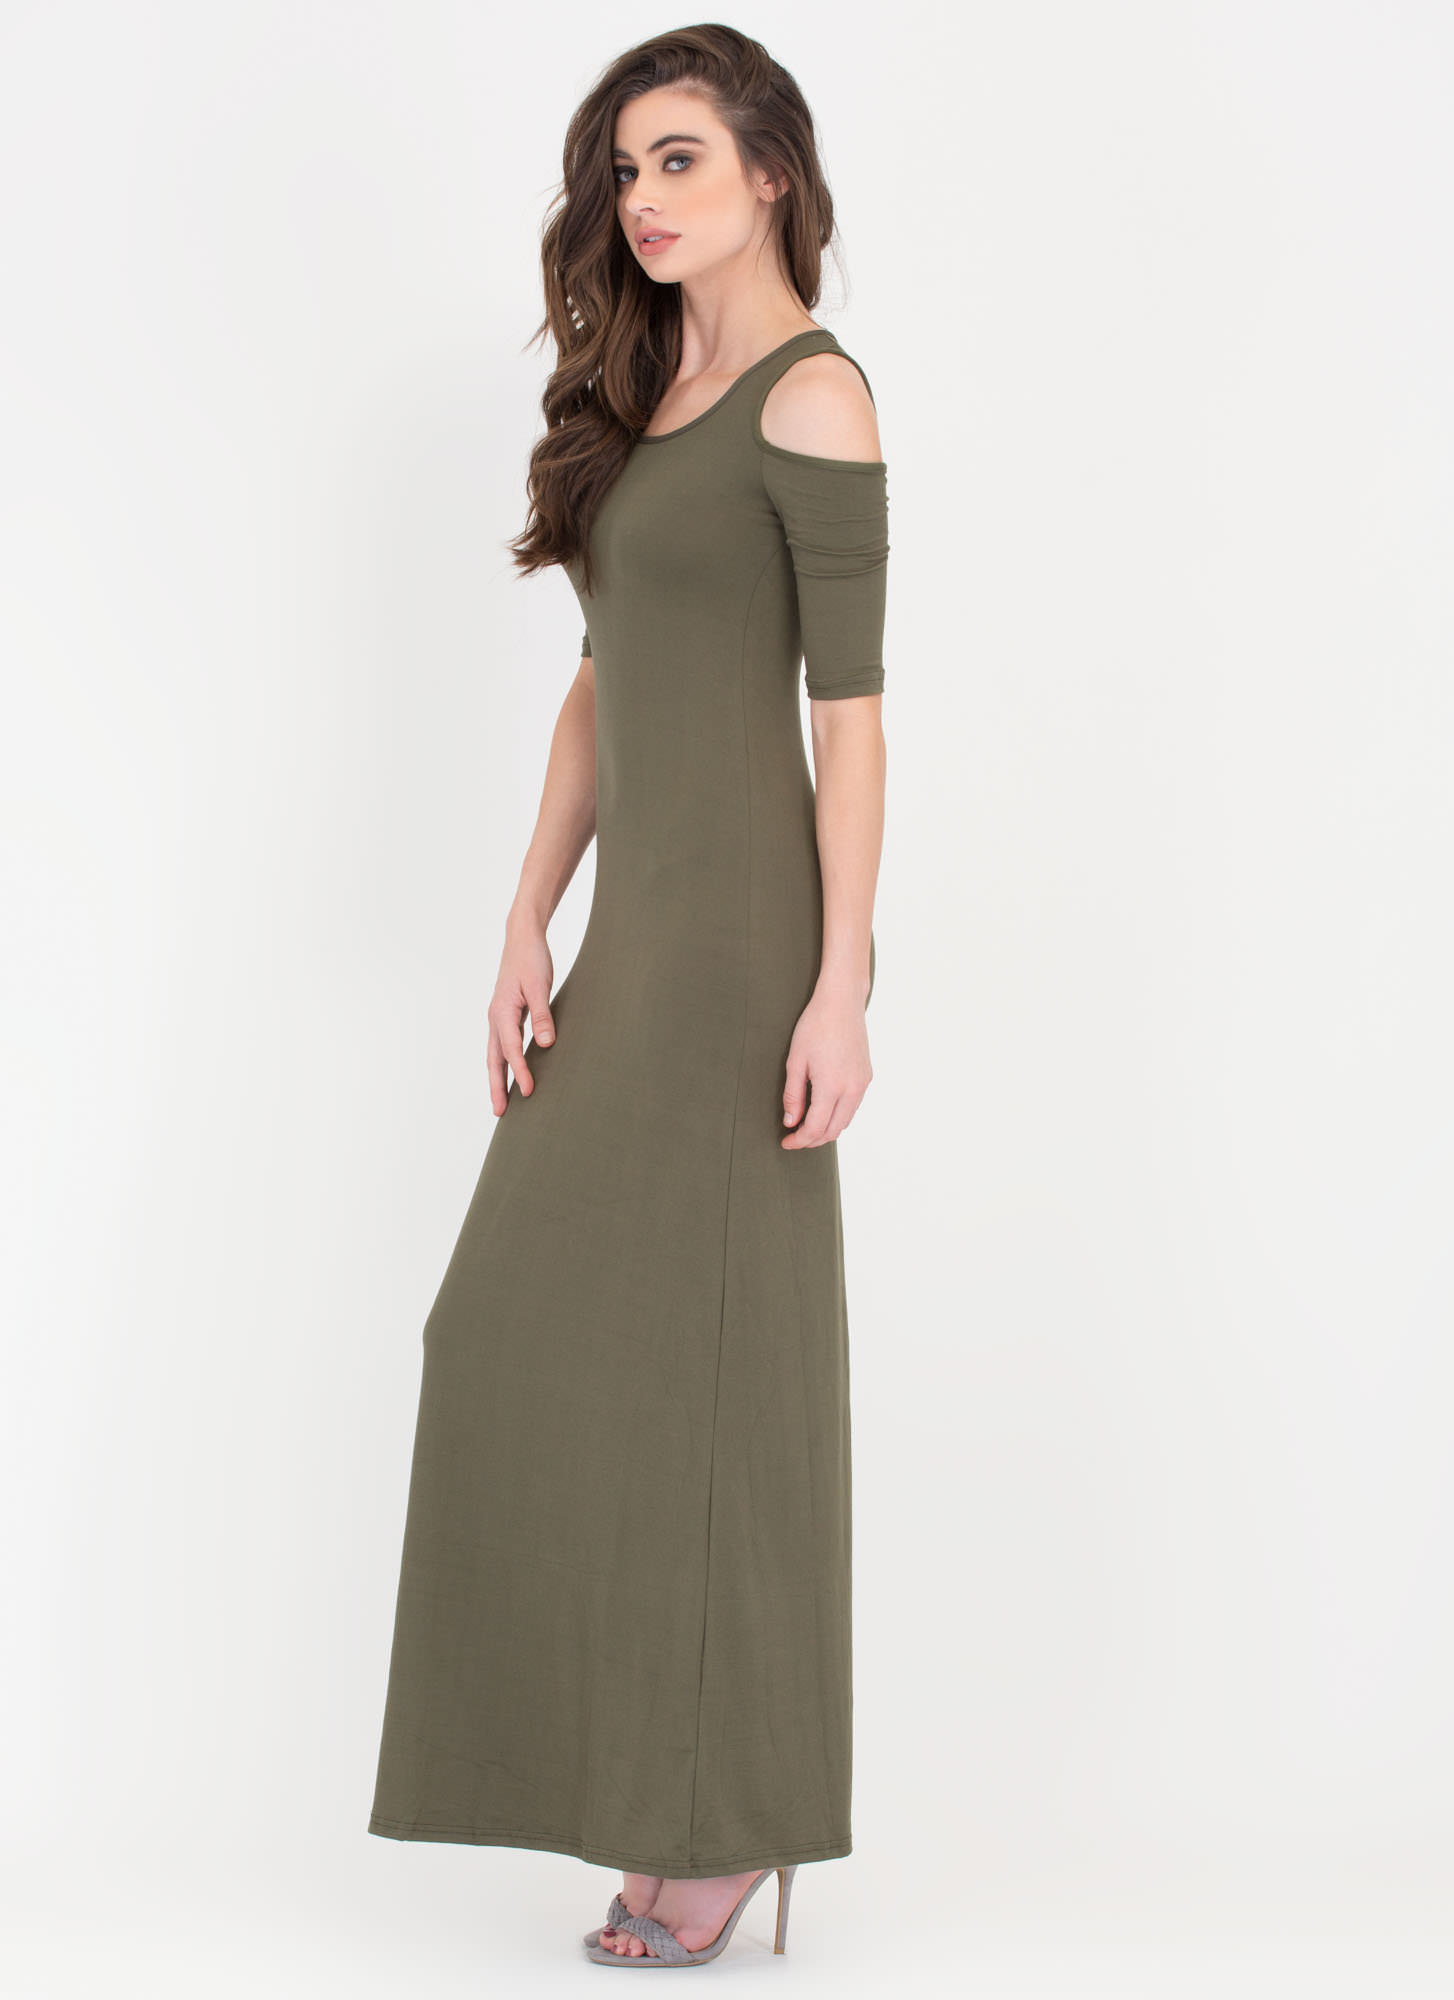 Shoulder To Shoulder Knit Maxi Dress OLIVE